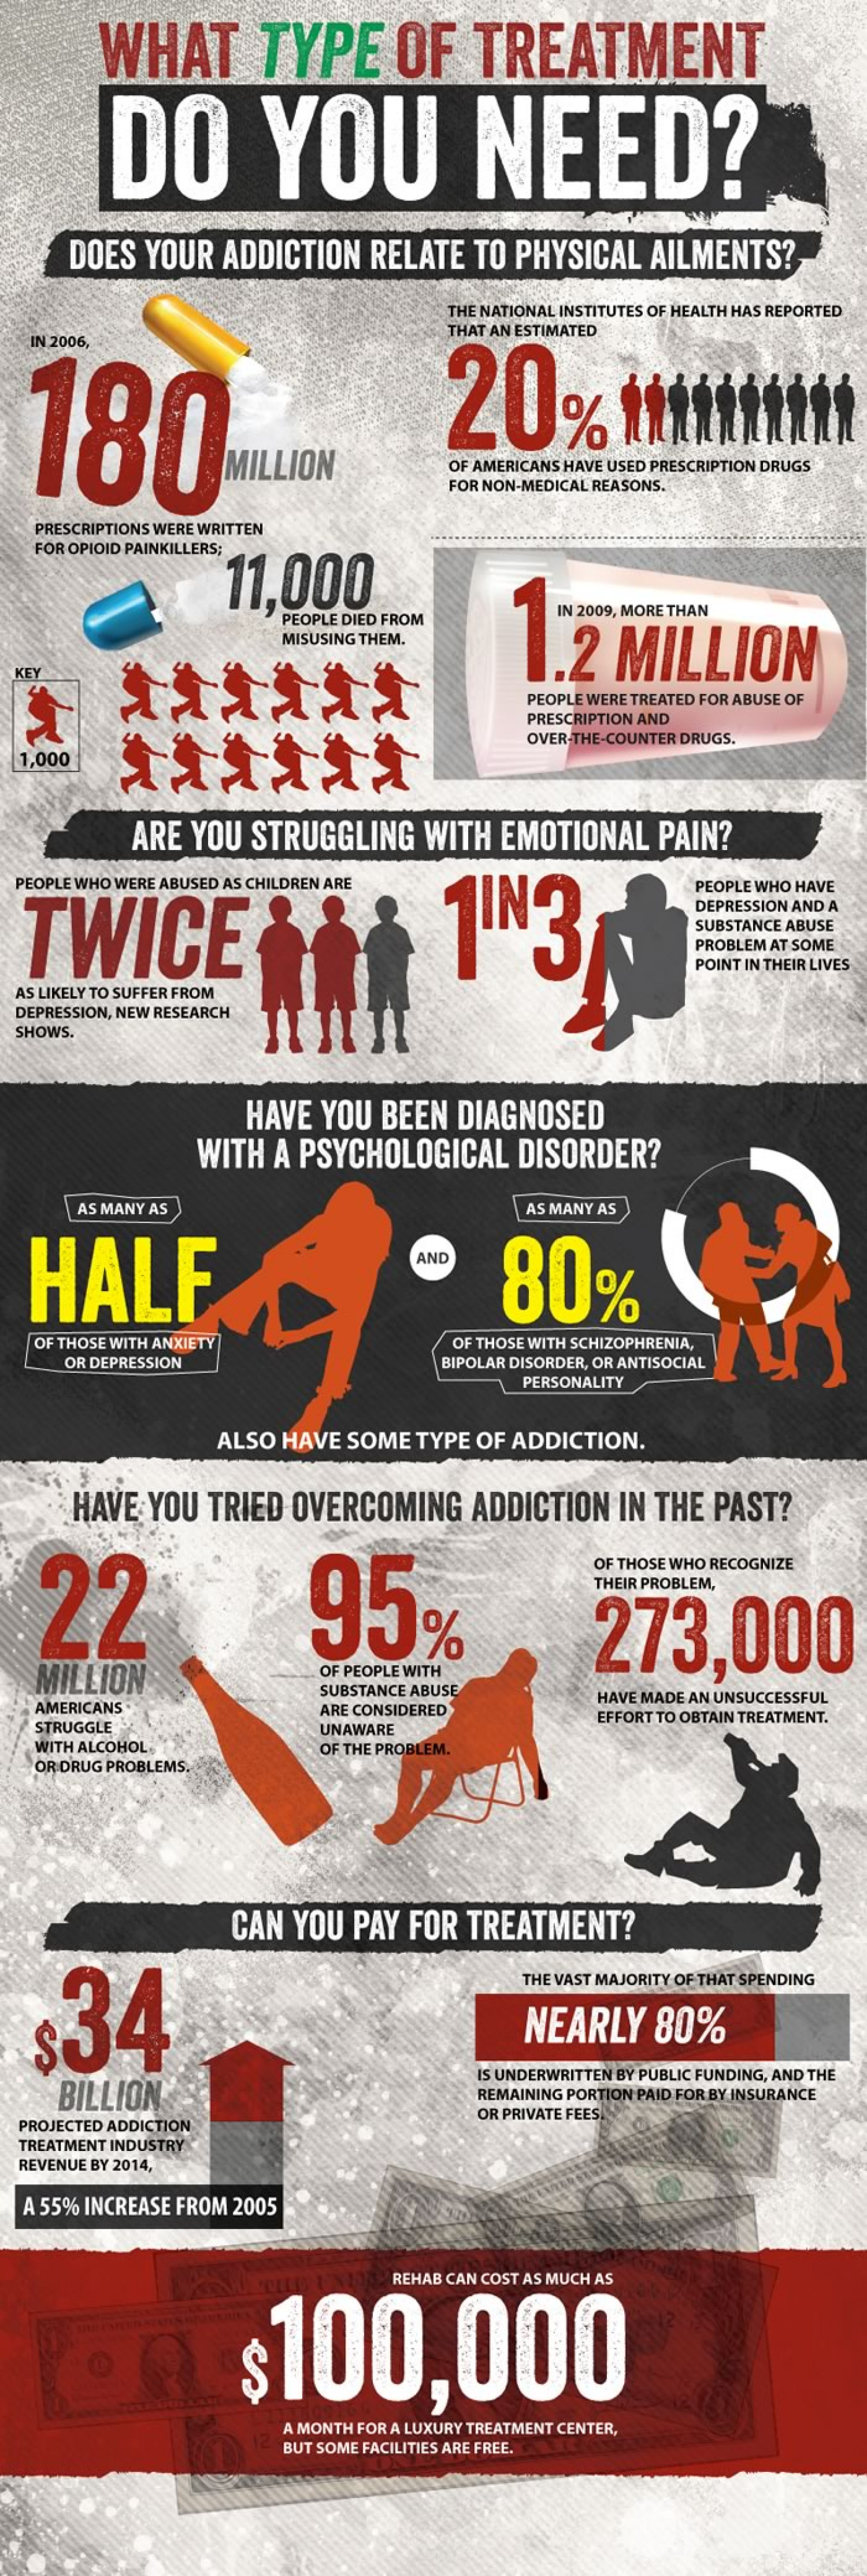 What Type of Addiction Treatment Do You Need? Infographic